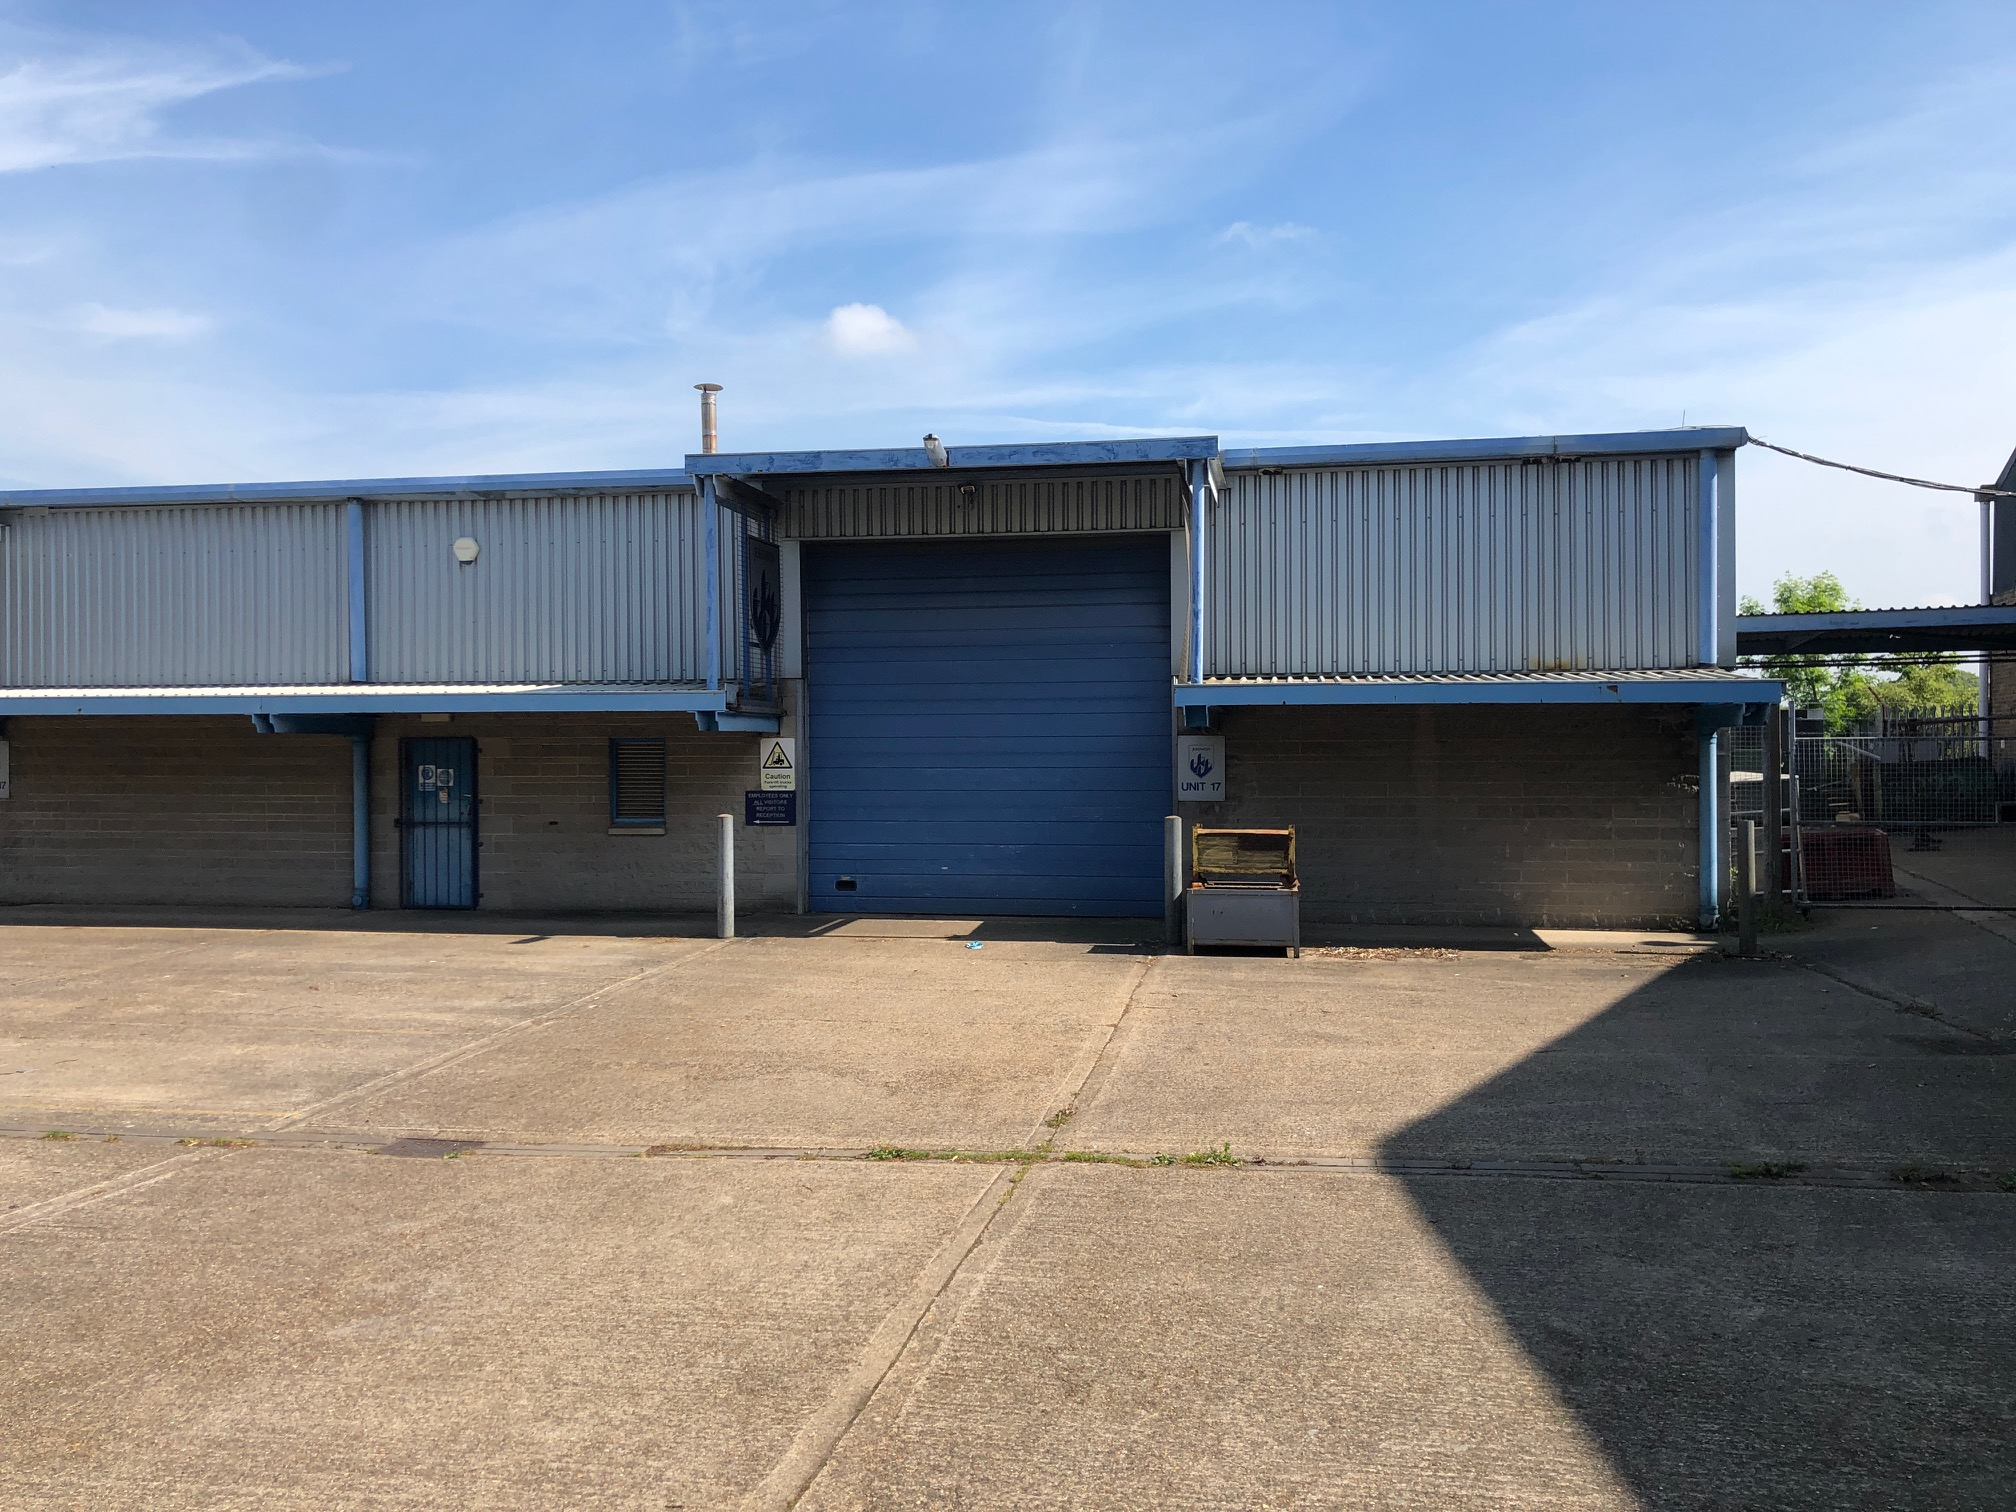 Orchard Trading Estate, Toddington, GL54